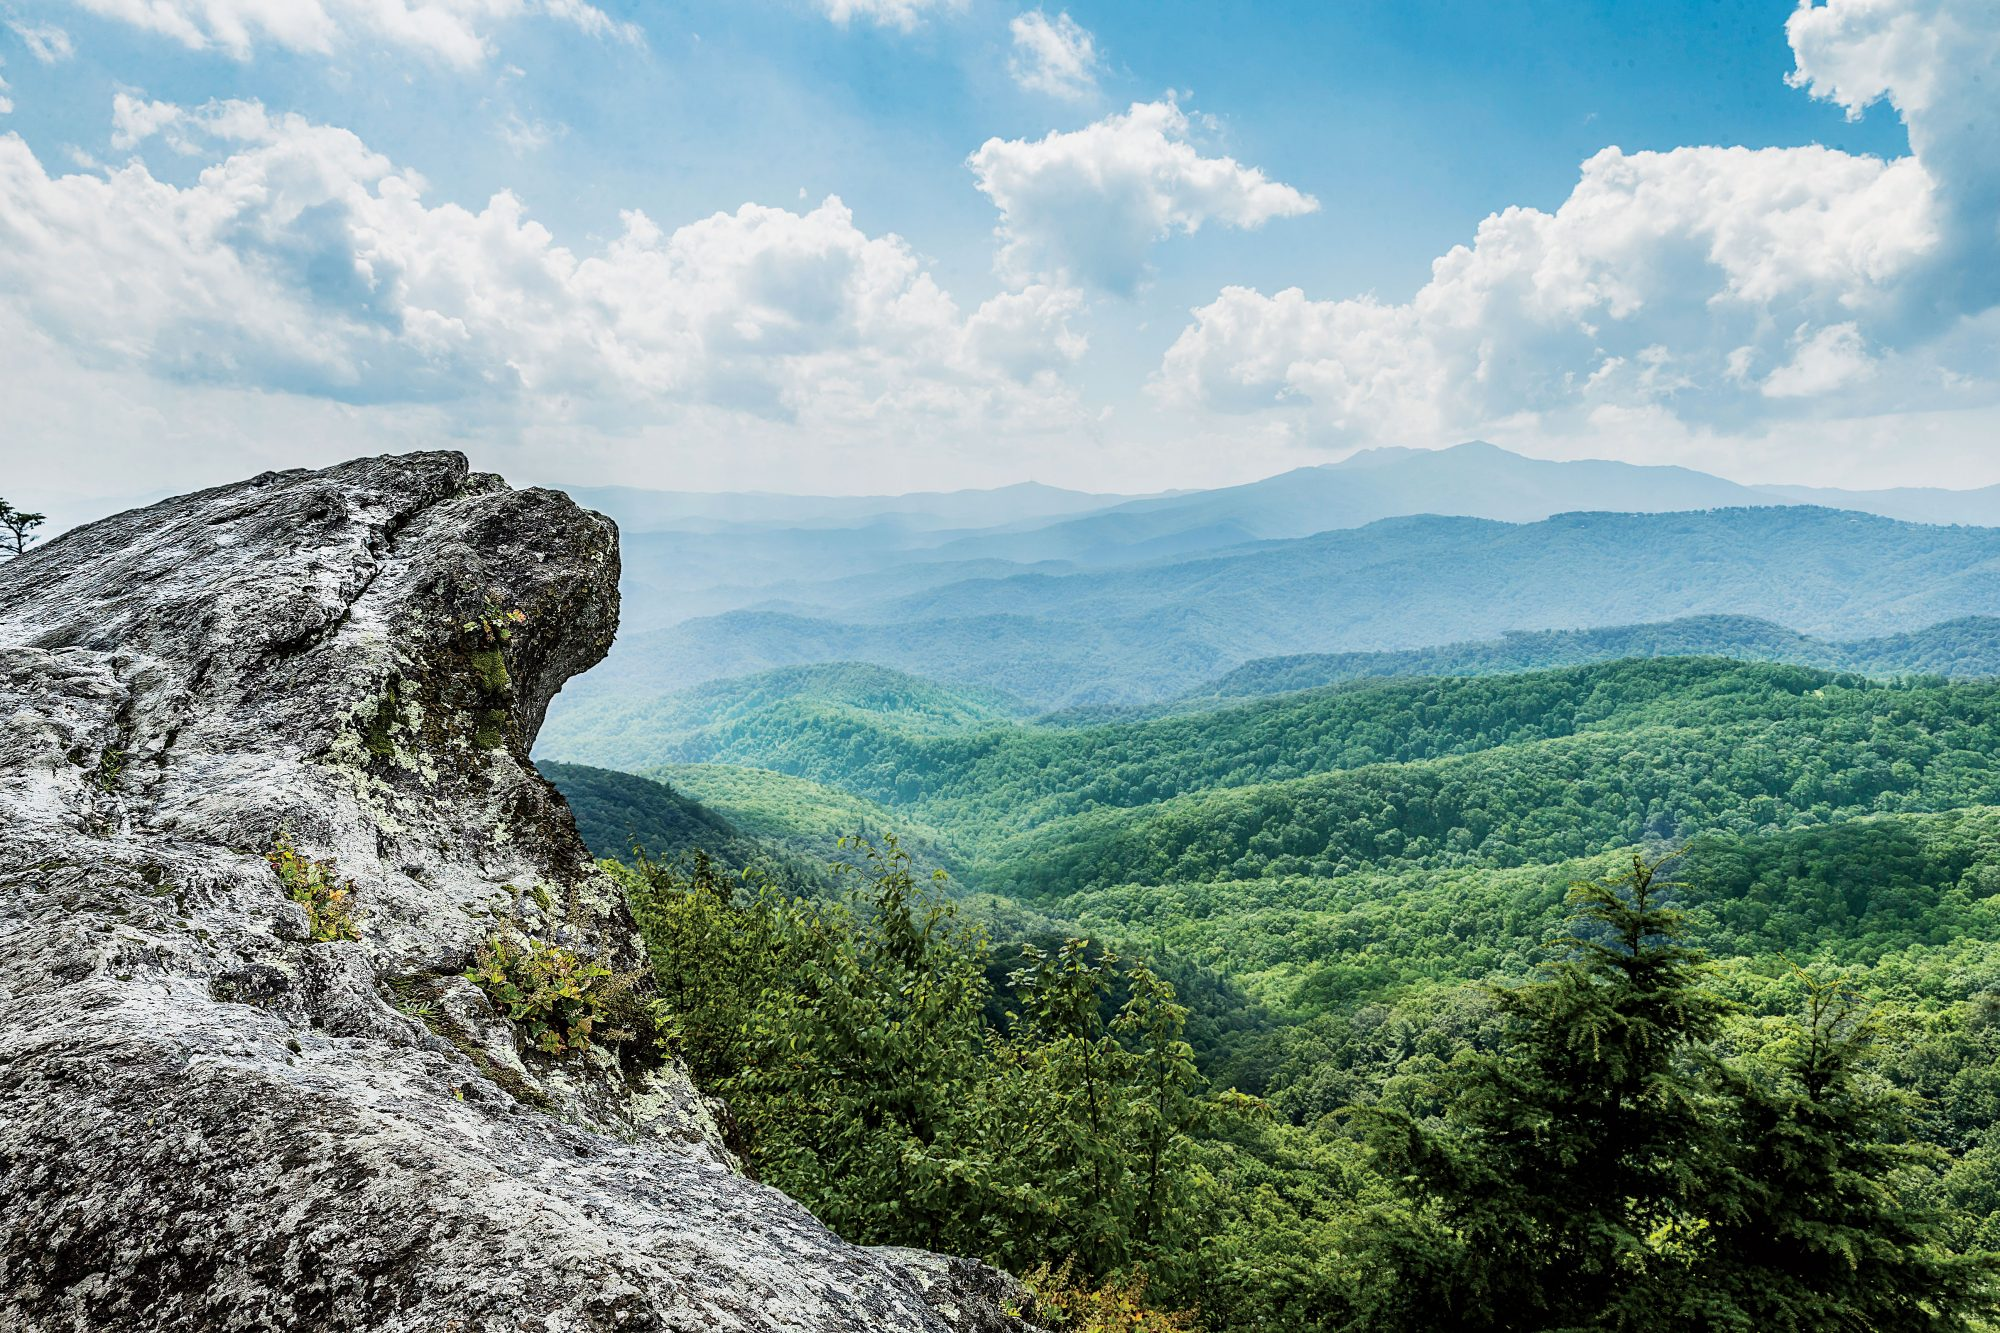 2. Blowing Rock, North Carolina